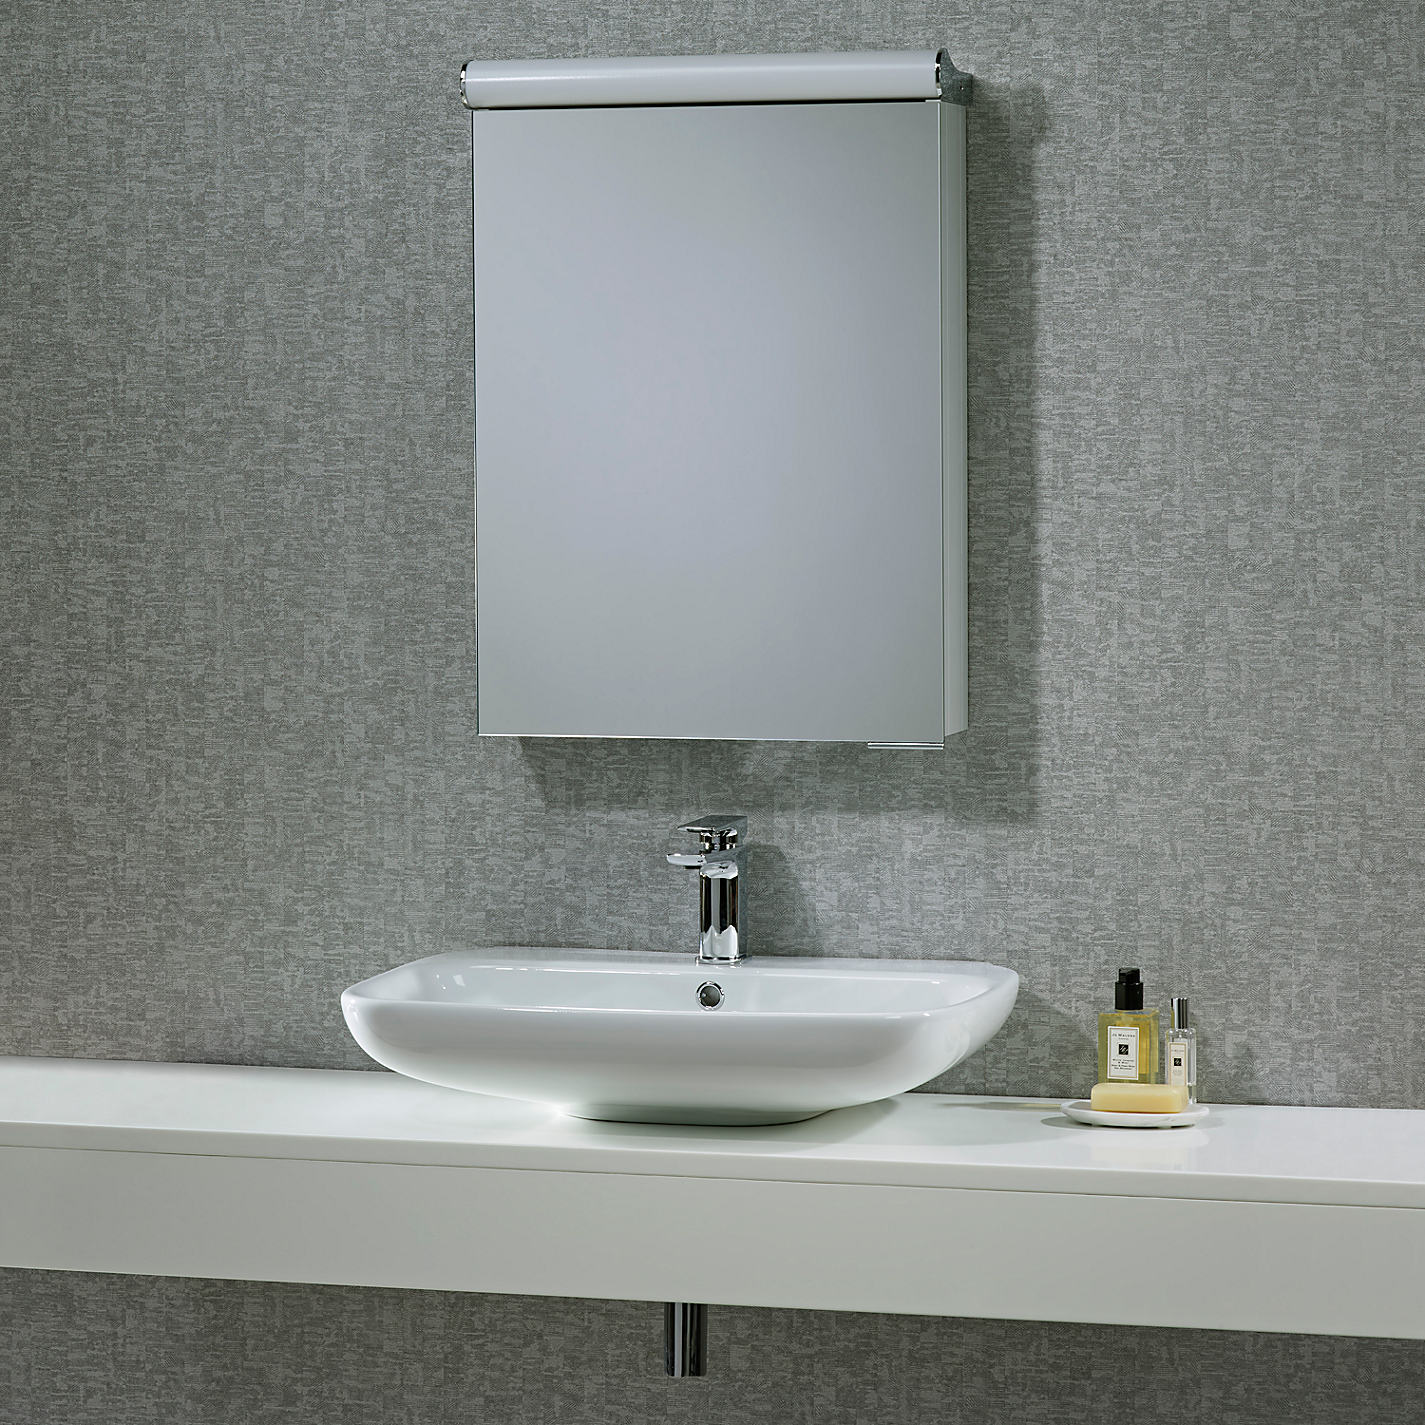 Buy Roper Rhodes Elevate Illuminated Single Bathroom Cabinet with